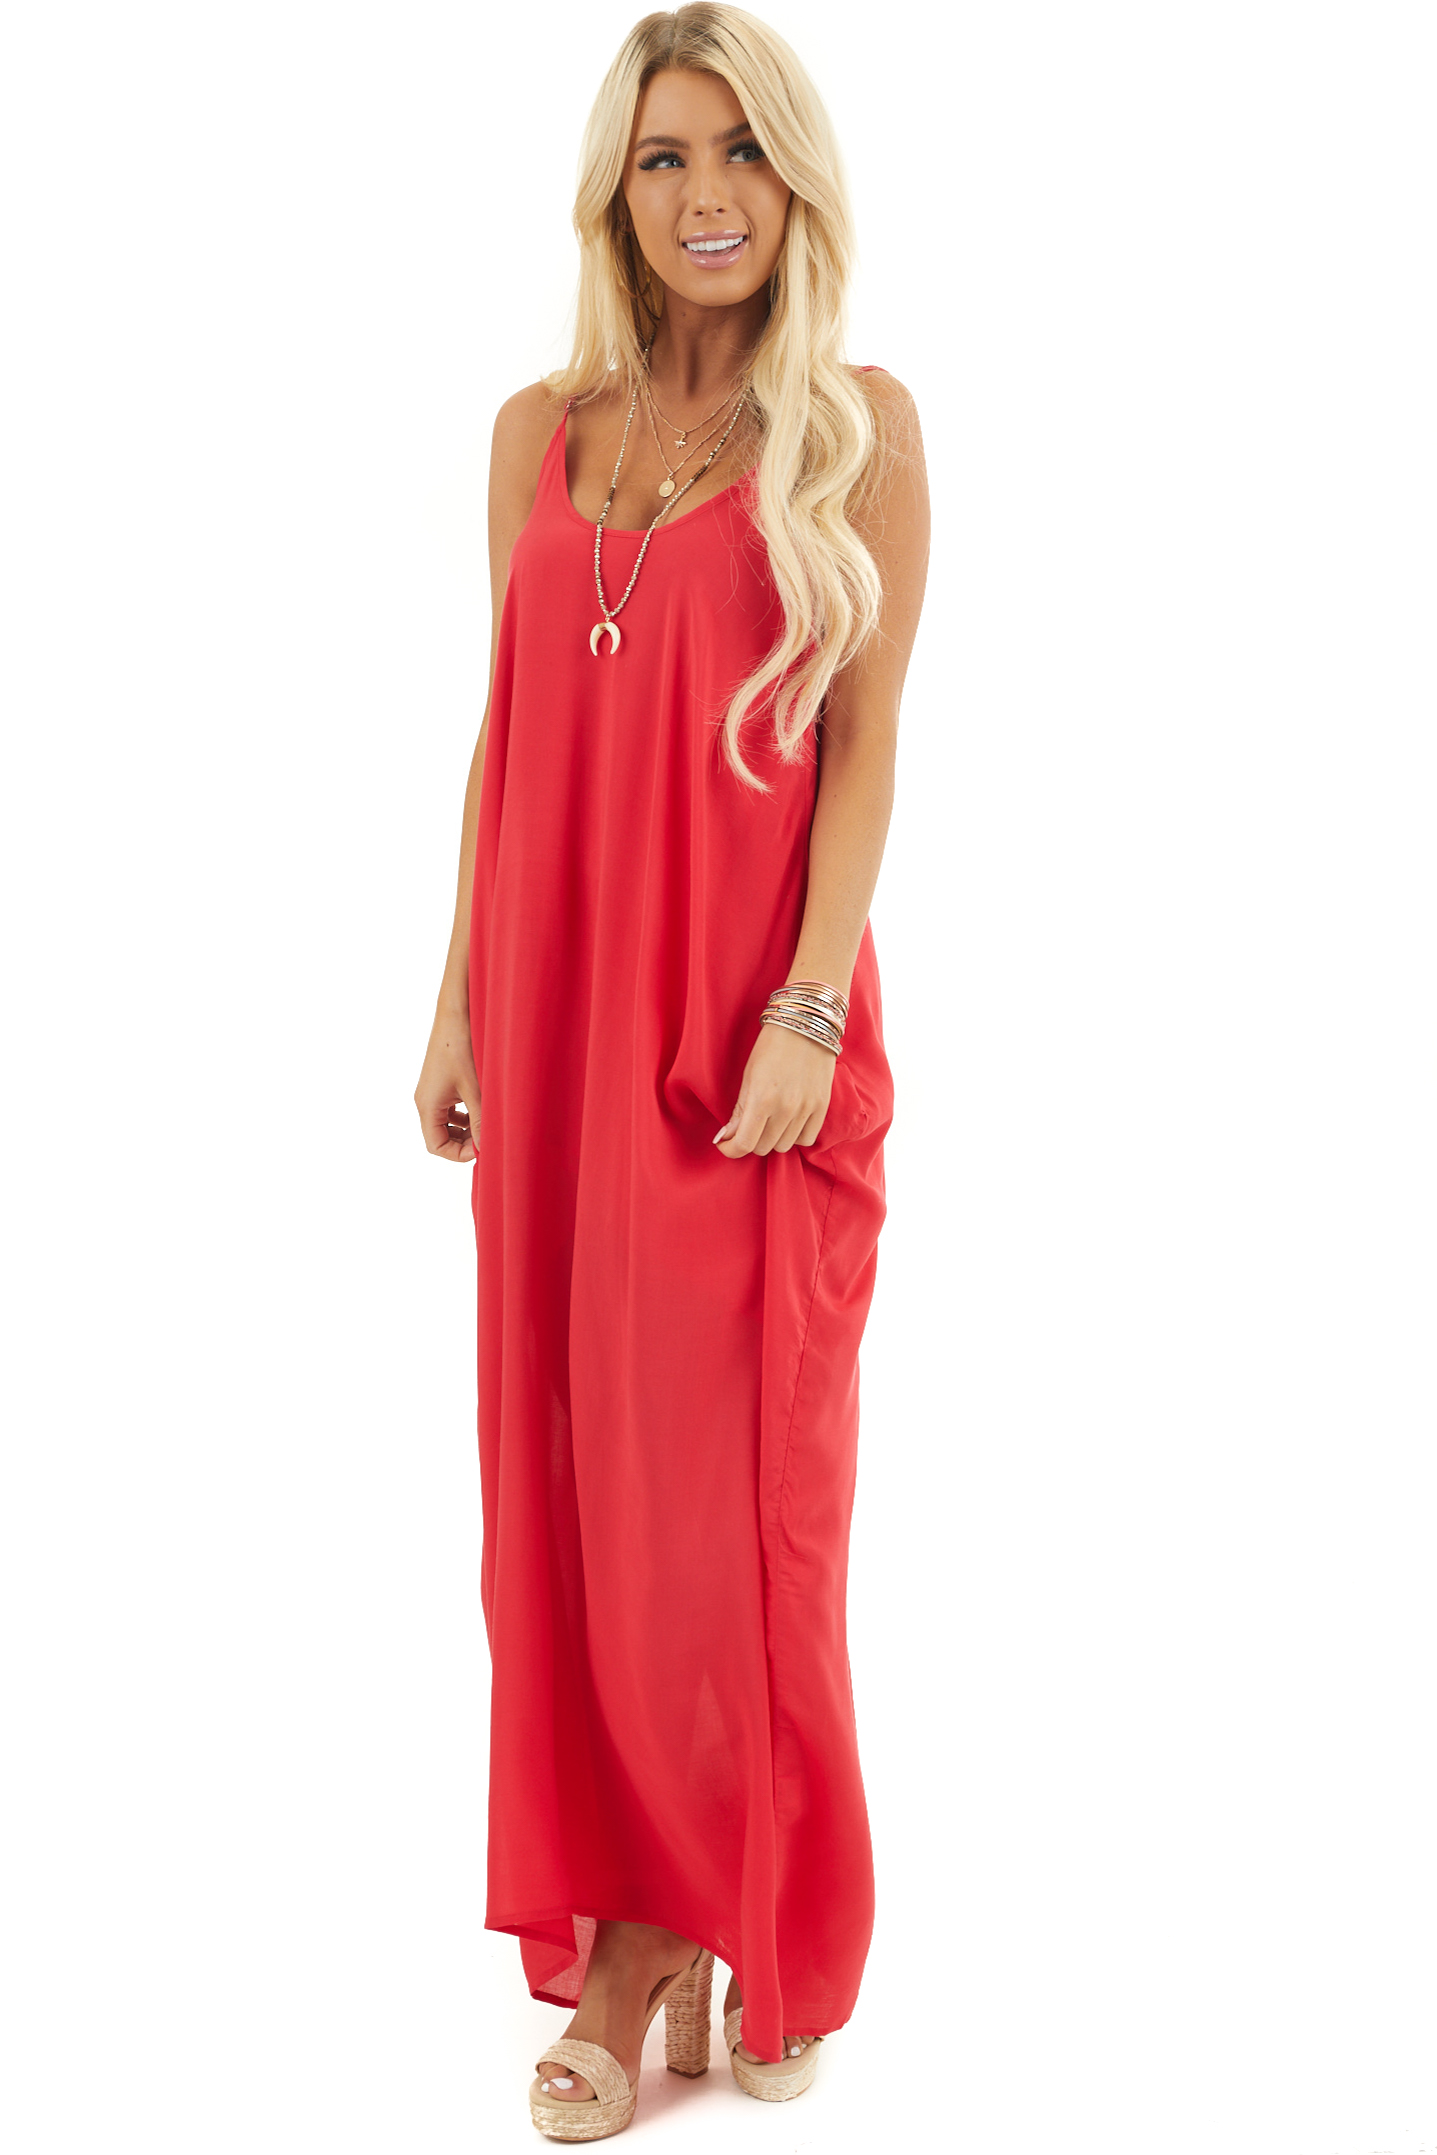 Ruby Red Sleeveless Maxi Dress with Scoop Neckline